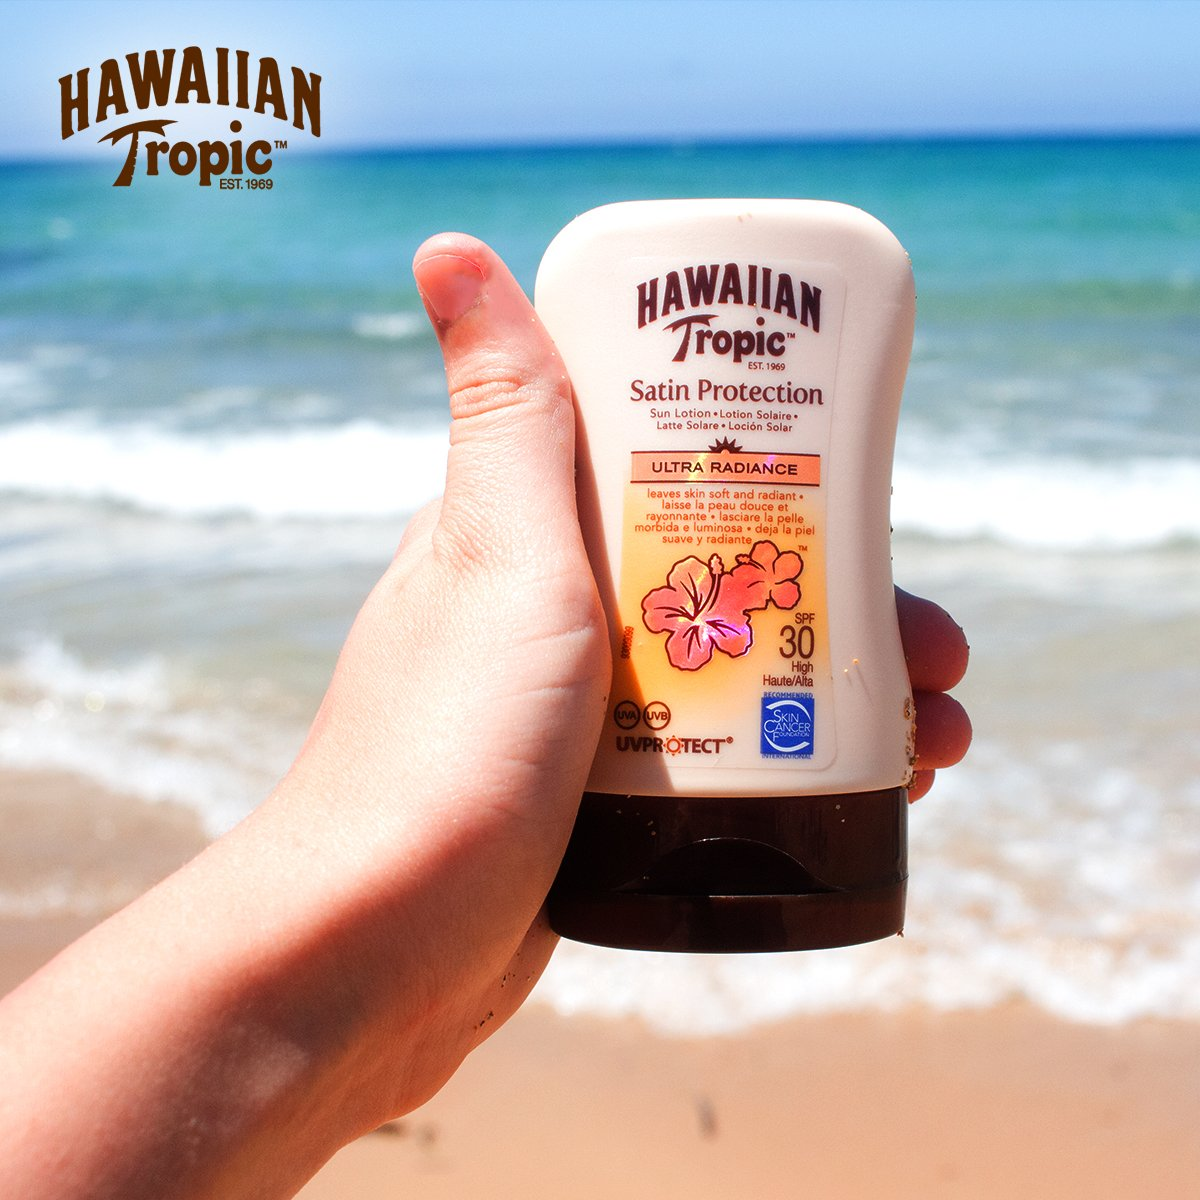 Hawaiian Tropic Malta product 01